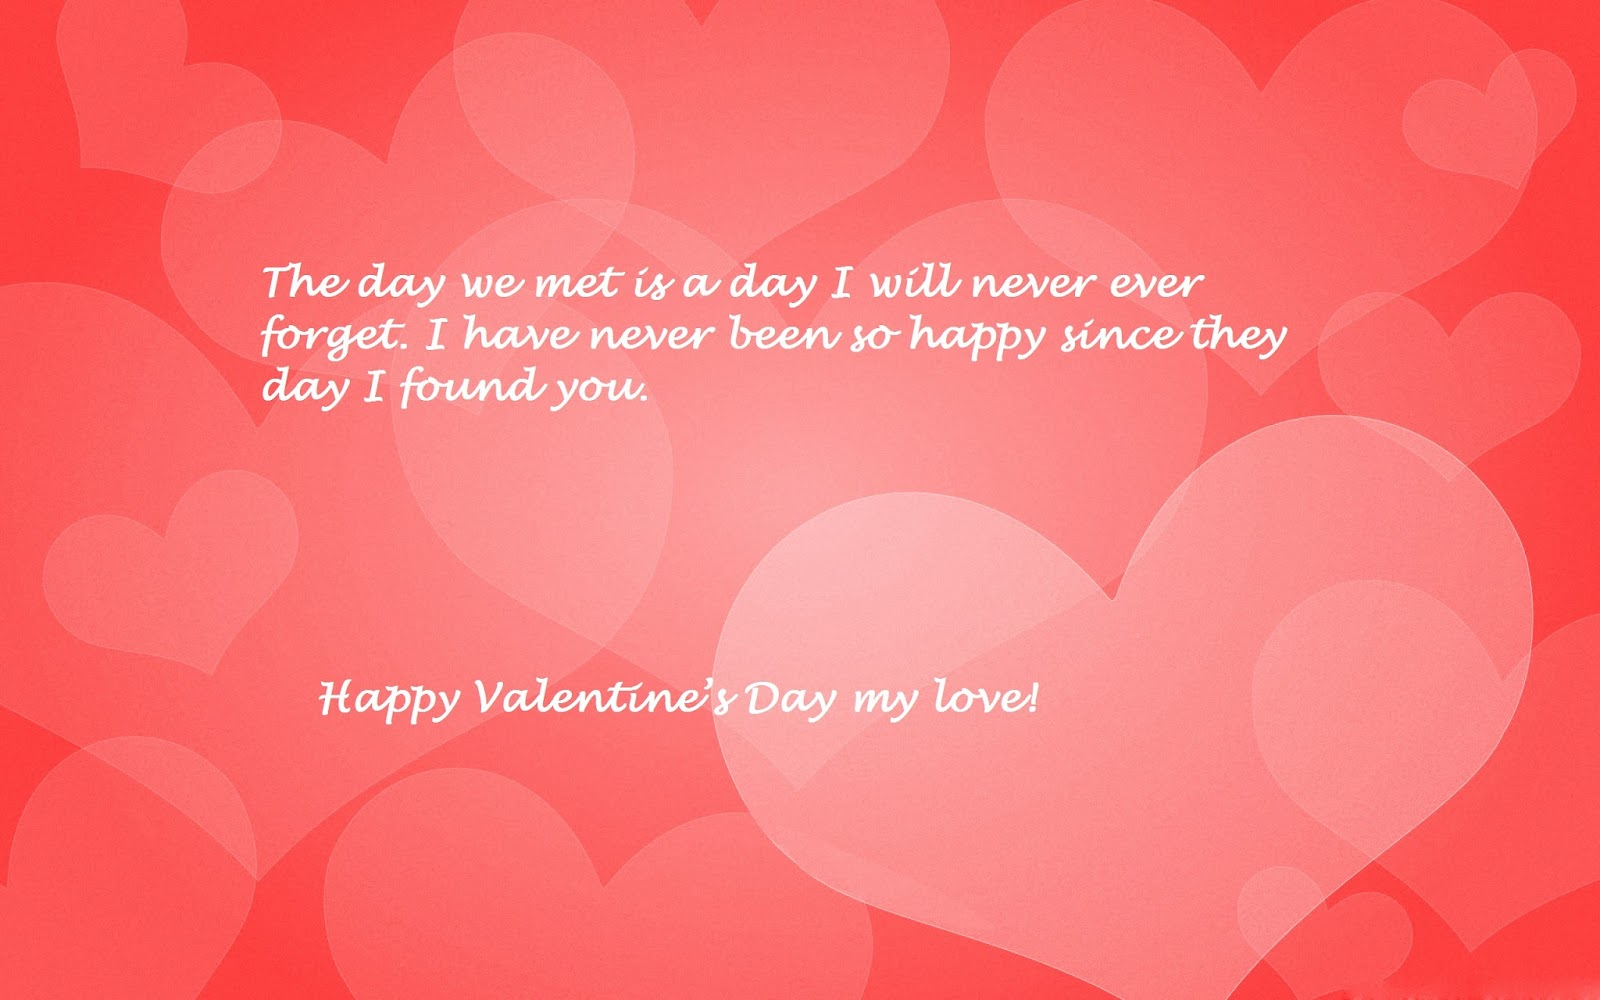 Valentines Quotes For Her Happy Valentines Day Quotes Status And Shayari In Hindi And